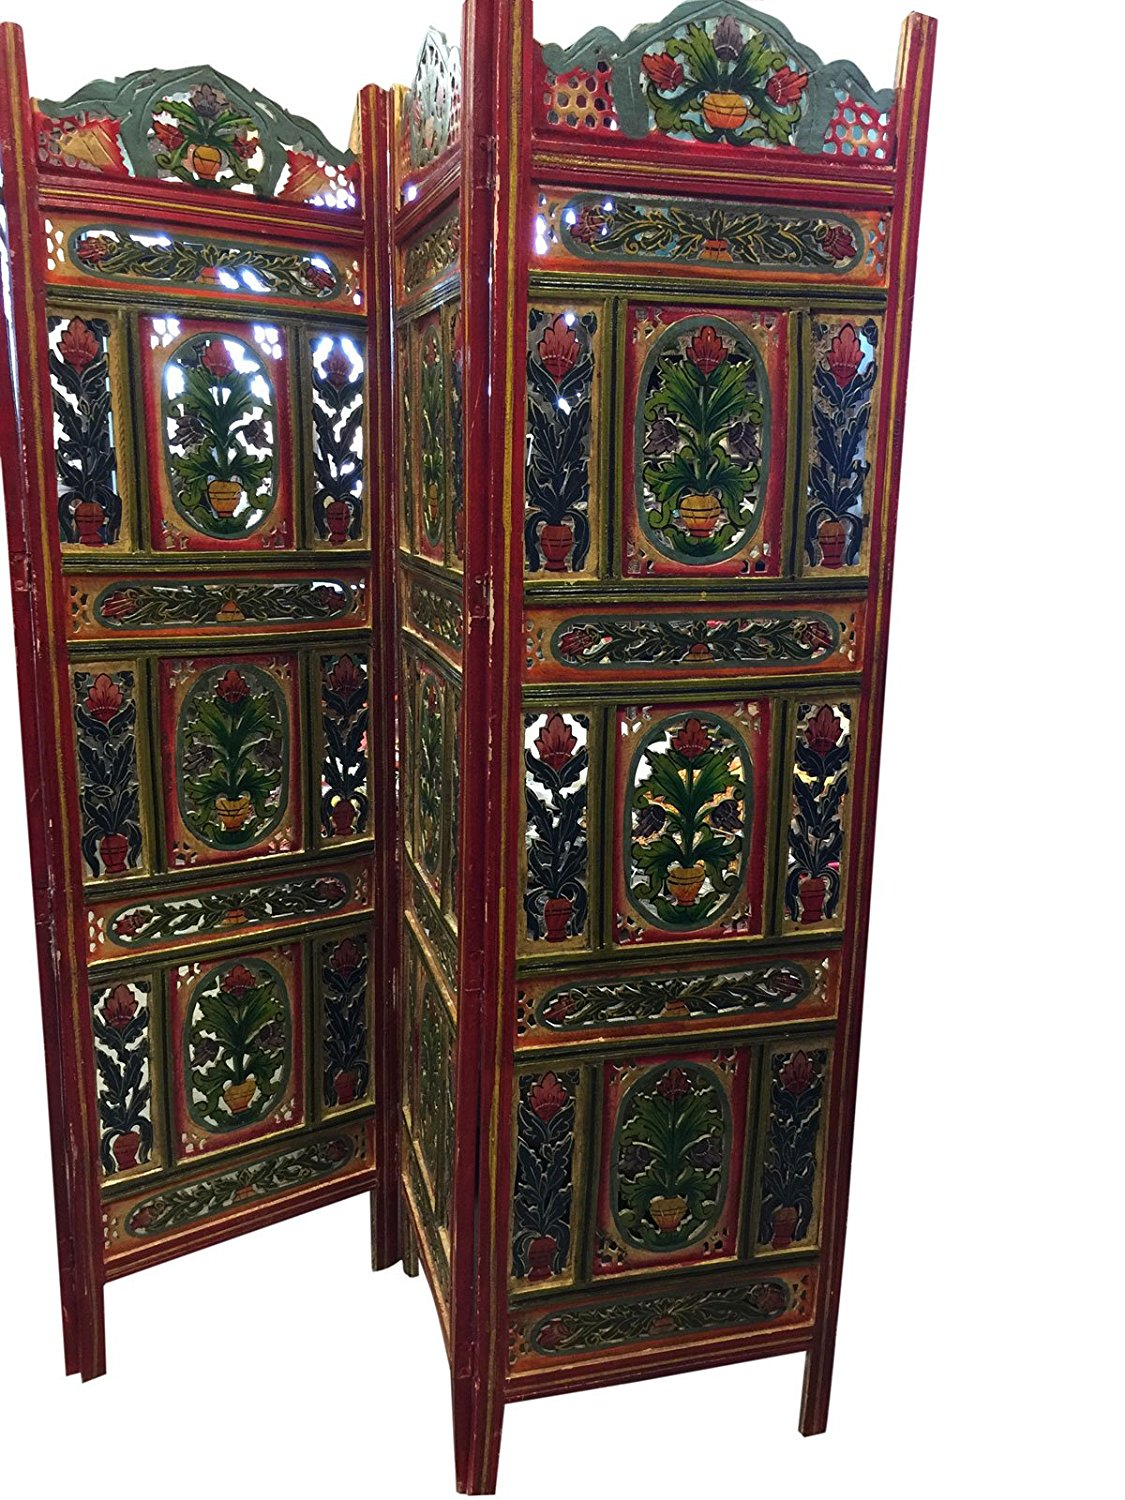 Get Quotations Mogulinterior Vintage Hand Carved Painted 4 Panel Fl Handcrafted Wood Room Divider Screen From Jaipur